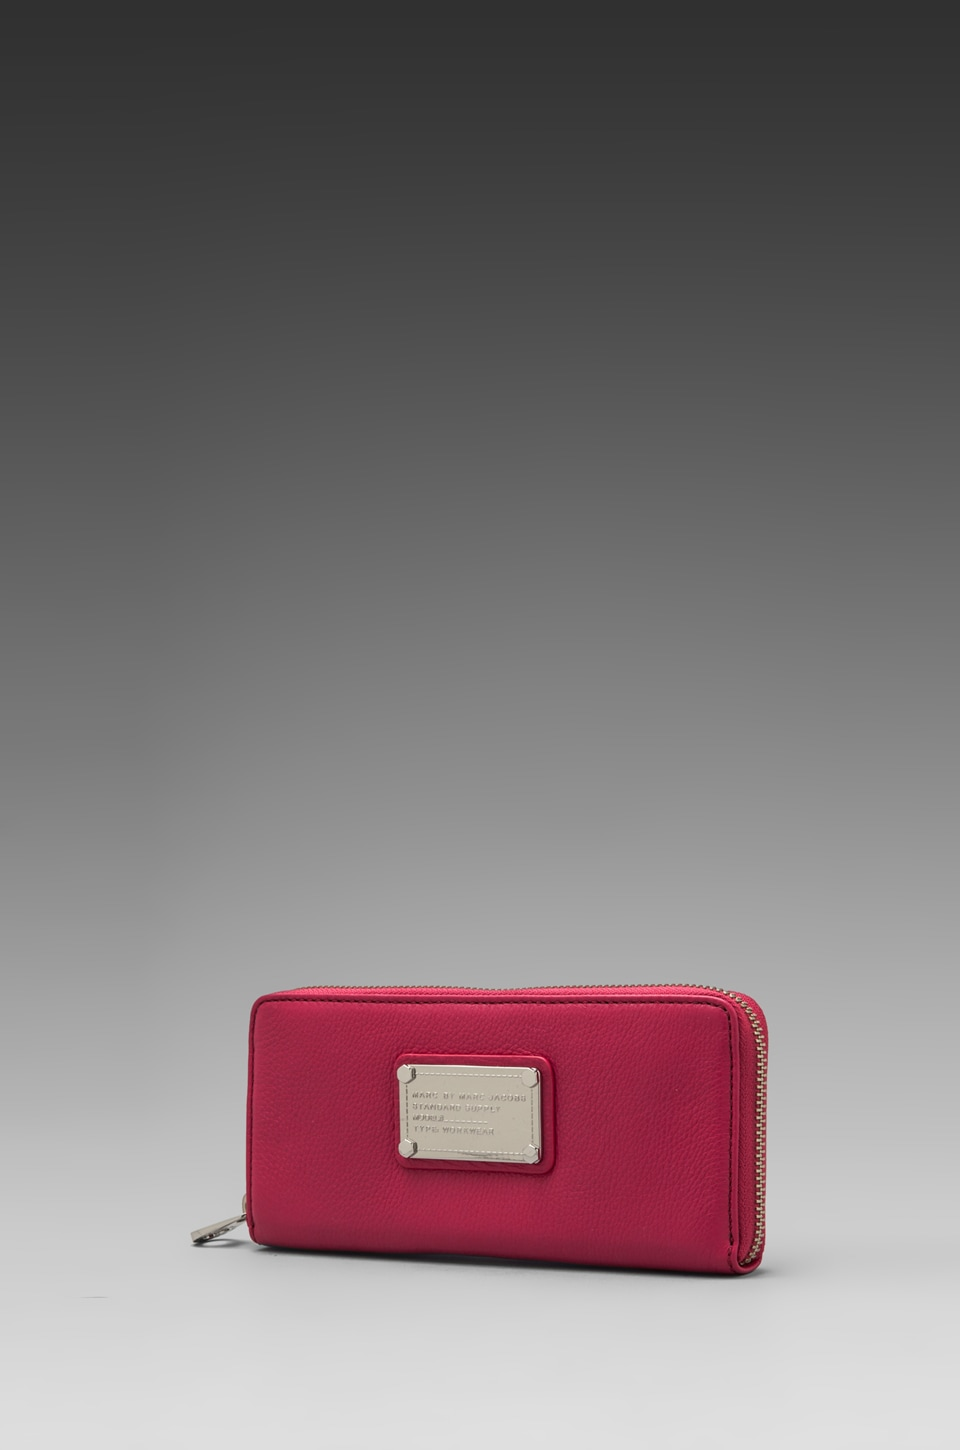 Marc by Marc Jacobs Classic Q Slim Zip Around in Rose Petal